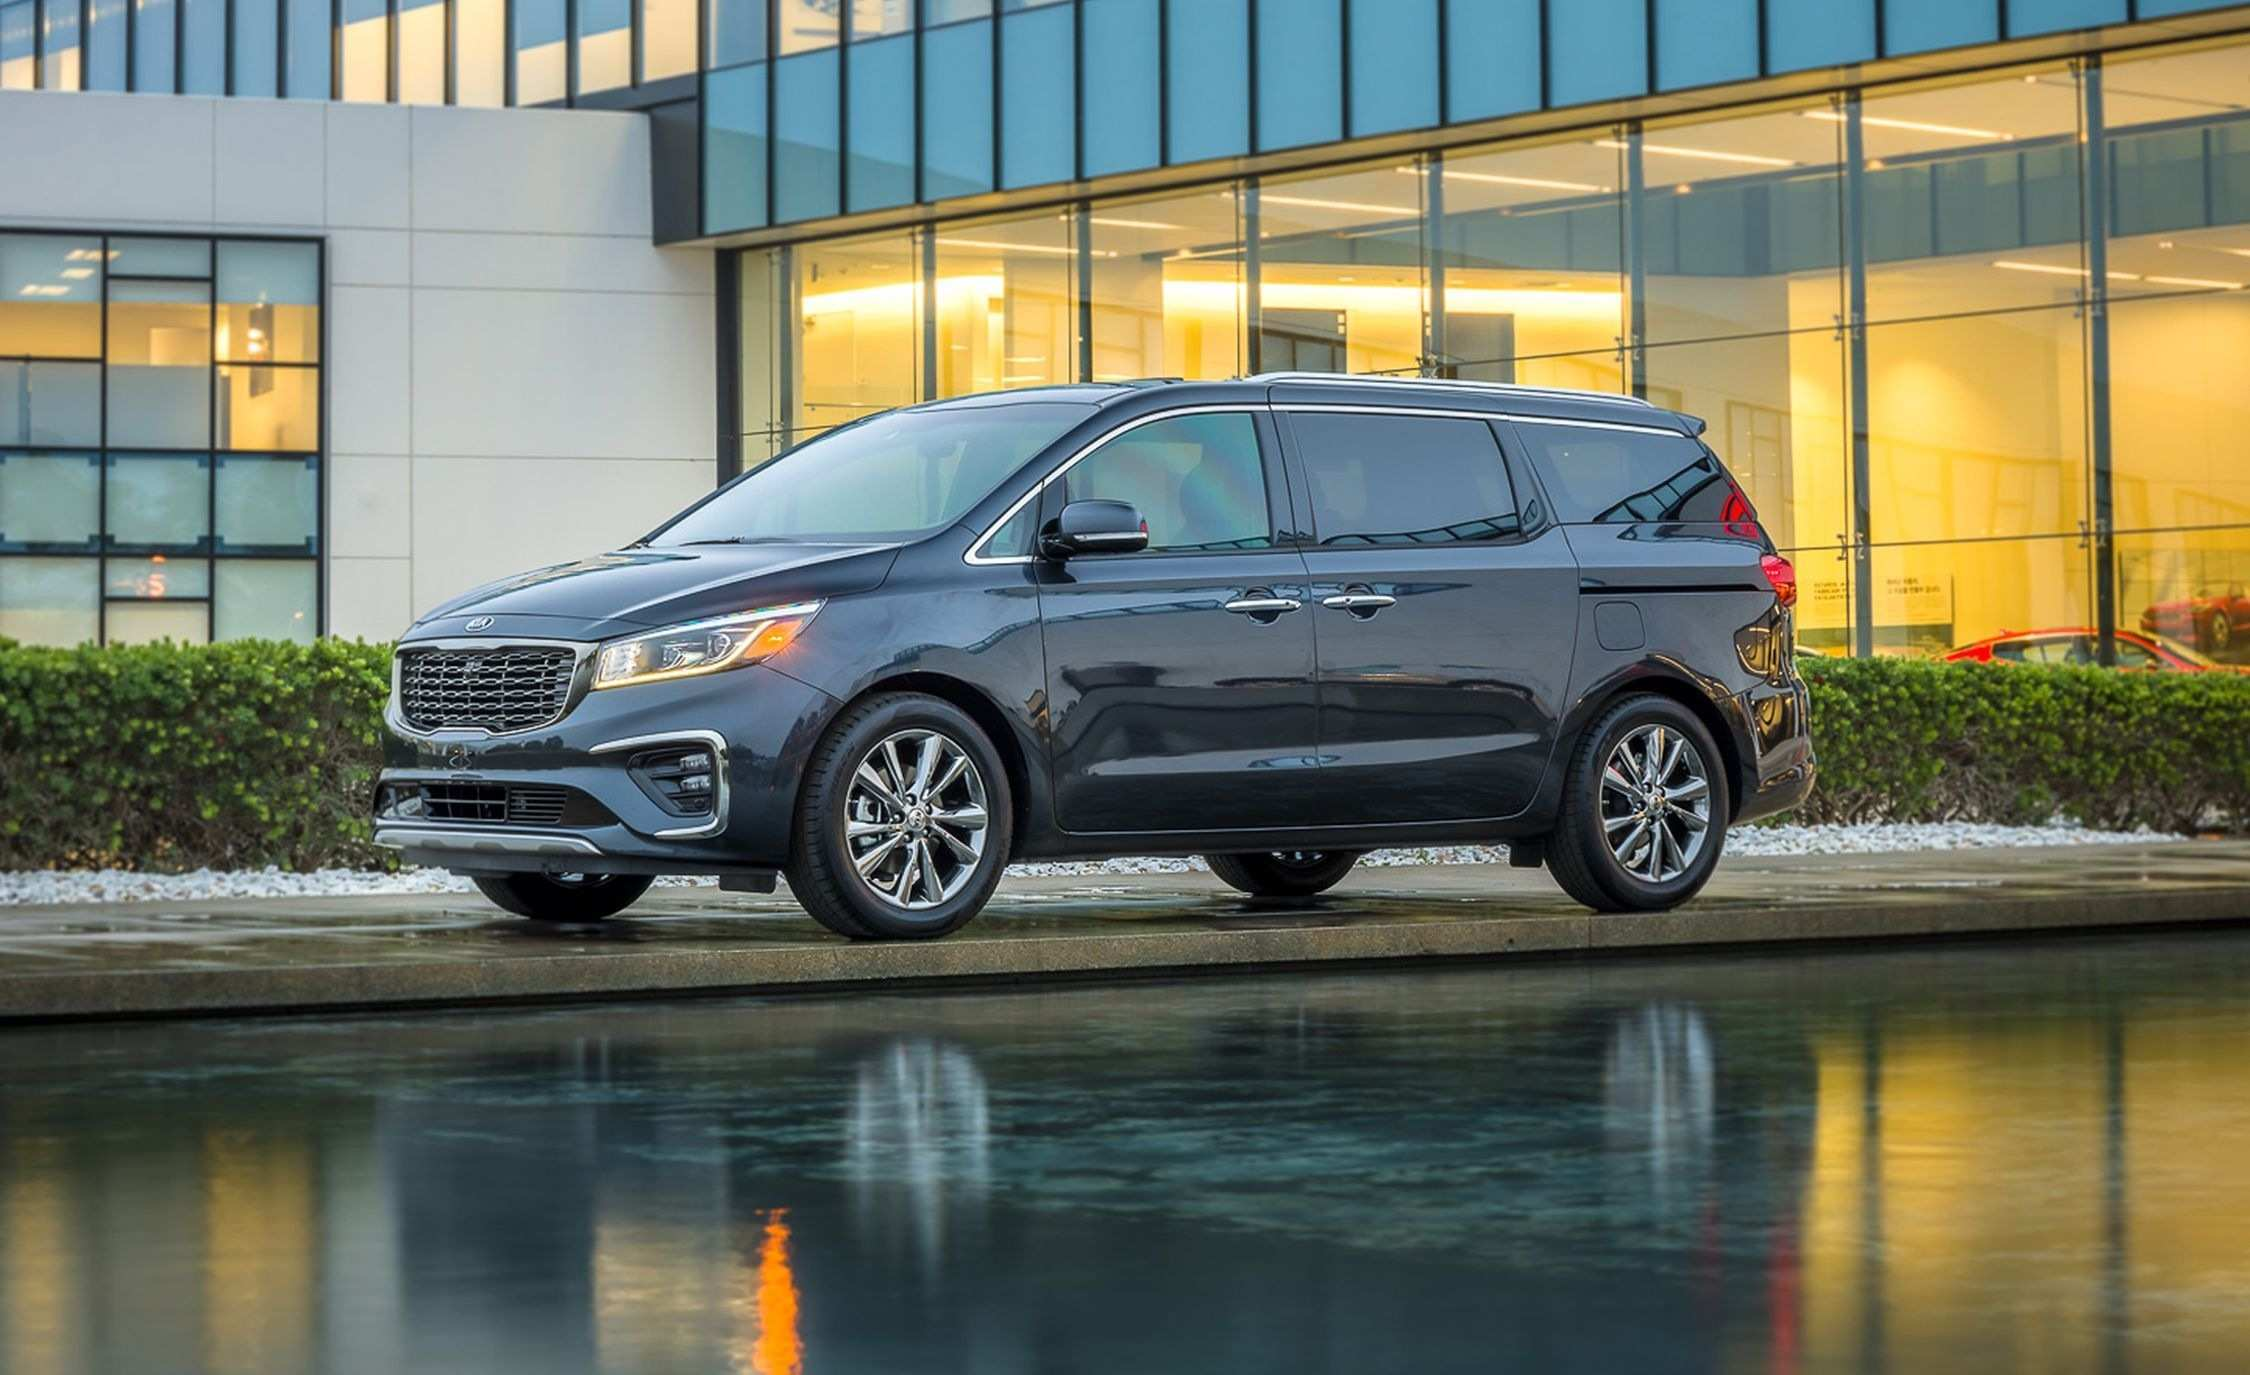 53 New 2020 Kia Carnival Review